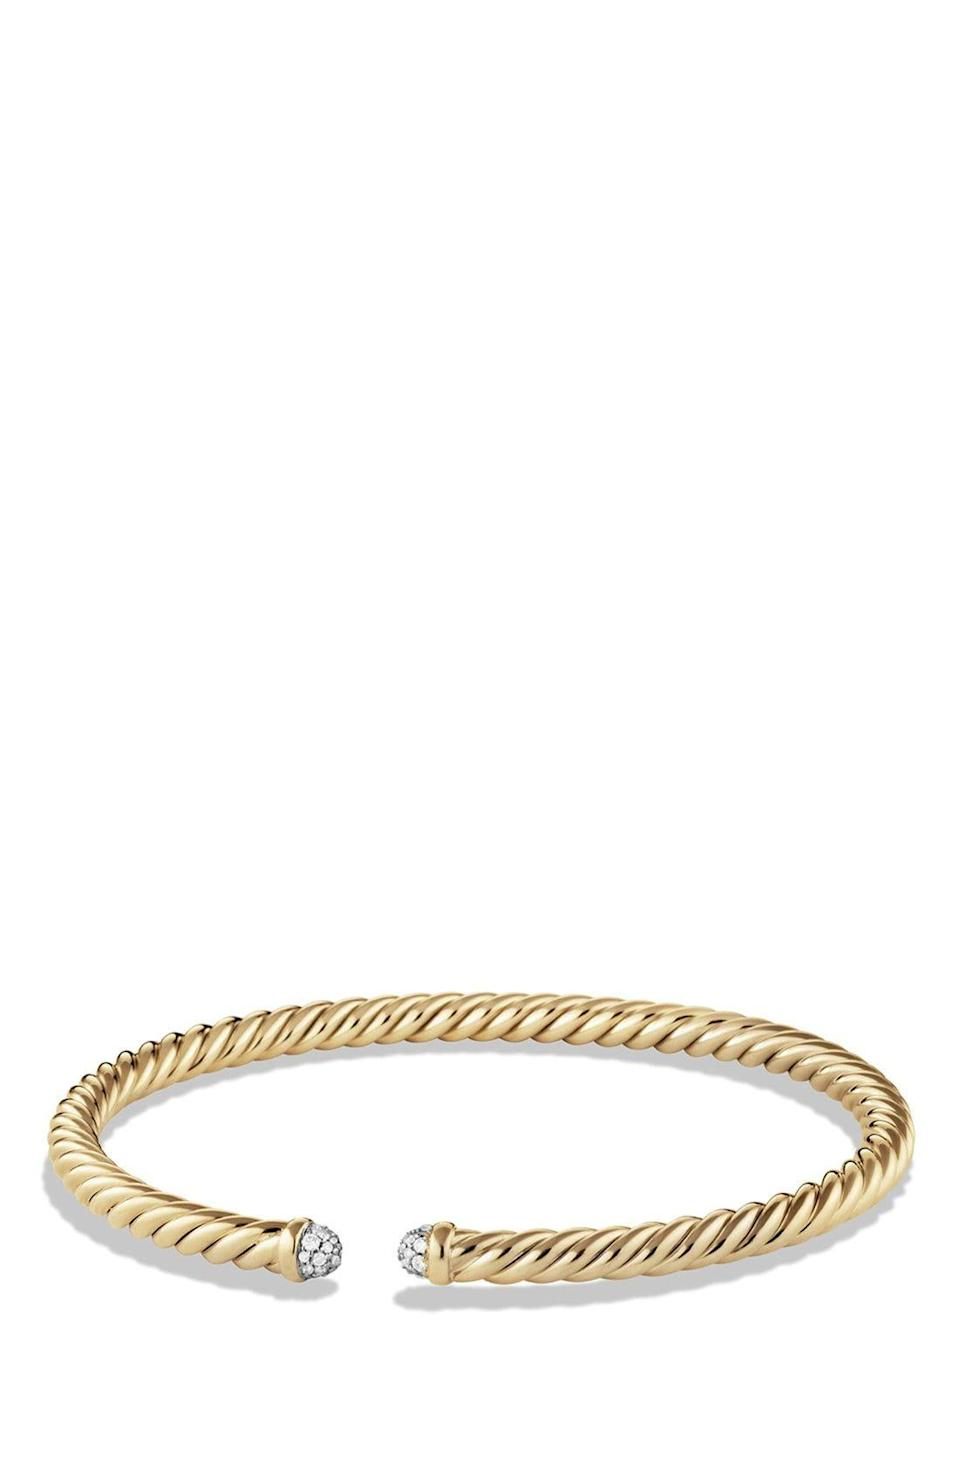 """<p><strong>DAVID YURMAN</strong></p><p>nordstrom.com</p><p><strong>$2500.00</strong></p><p><a href=""""https://go.redirectingat.com?id=74968X1596630&url=https%3A%2F%2Fshop.nordstrom.com%2Fs%2Fdavid-yurman-cable-spira-bracelet-in-18k-gold-4mm%2F3825135&sref=https%3A%2F%2Fwww.redbookmag.com%2Ffashion%2Fg34824874%2Fbest-jewelry-gift-ideas%2F"""" rel=""""nofollow noopener"""" target=""""_blank"""" data-ylk=""""slk:Shop Now"""" class=""""link rapid-noclick-resp"""">Shop Now</a></p><p>The cable bracelet was one of David Yurman's first designs, and it continues to be a hit today. The diamond caps add a touch of sparkle to the utilitarian piece.</p>"""